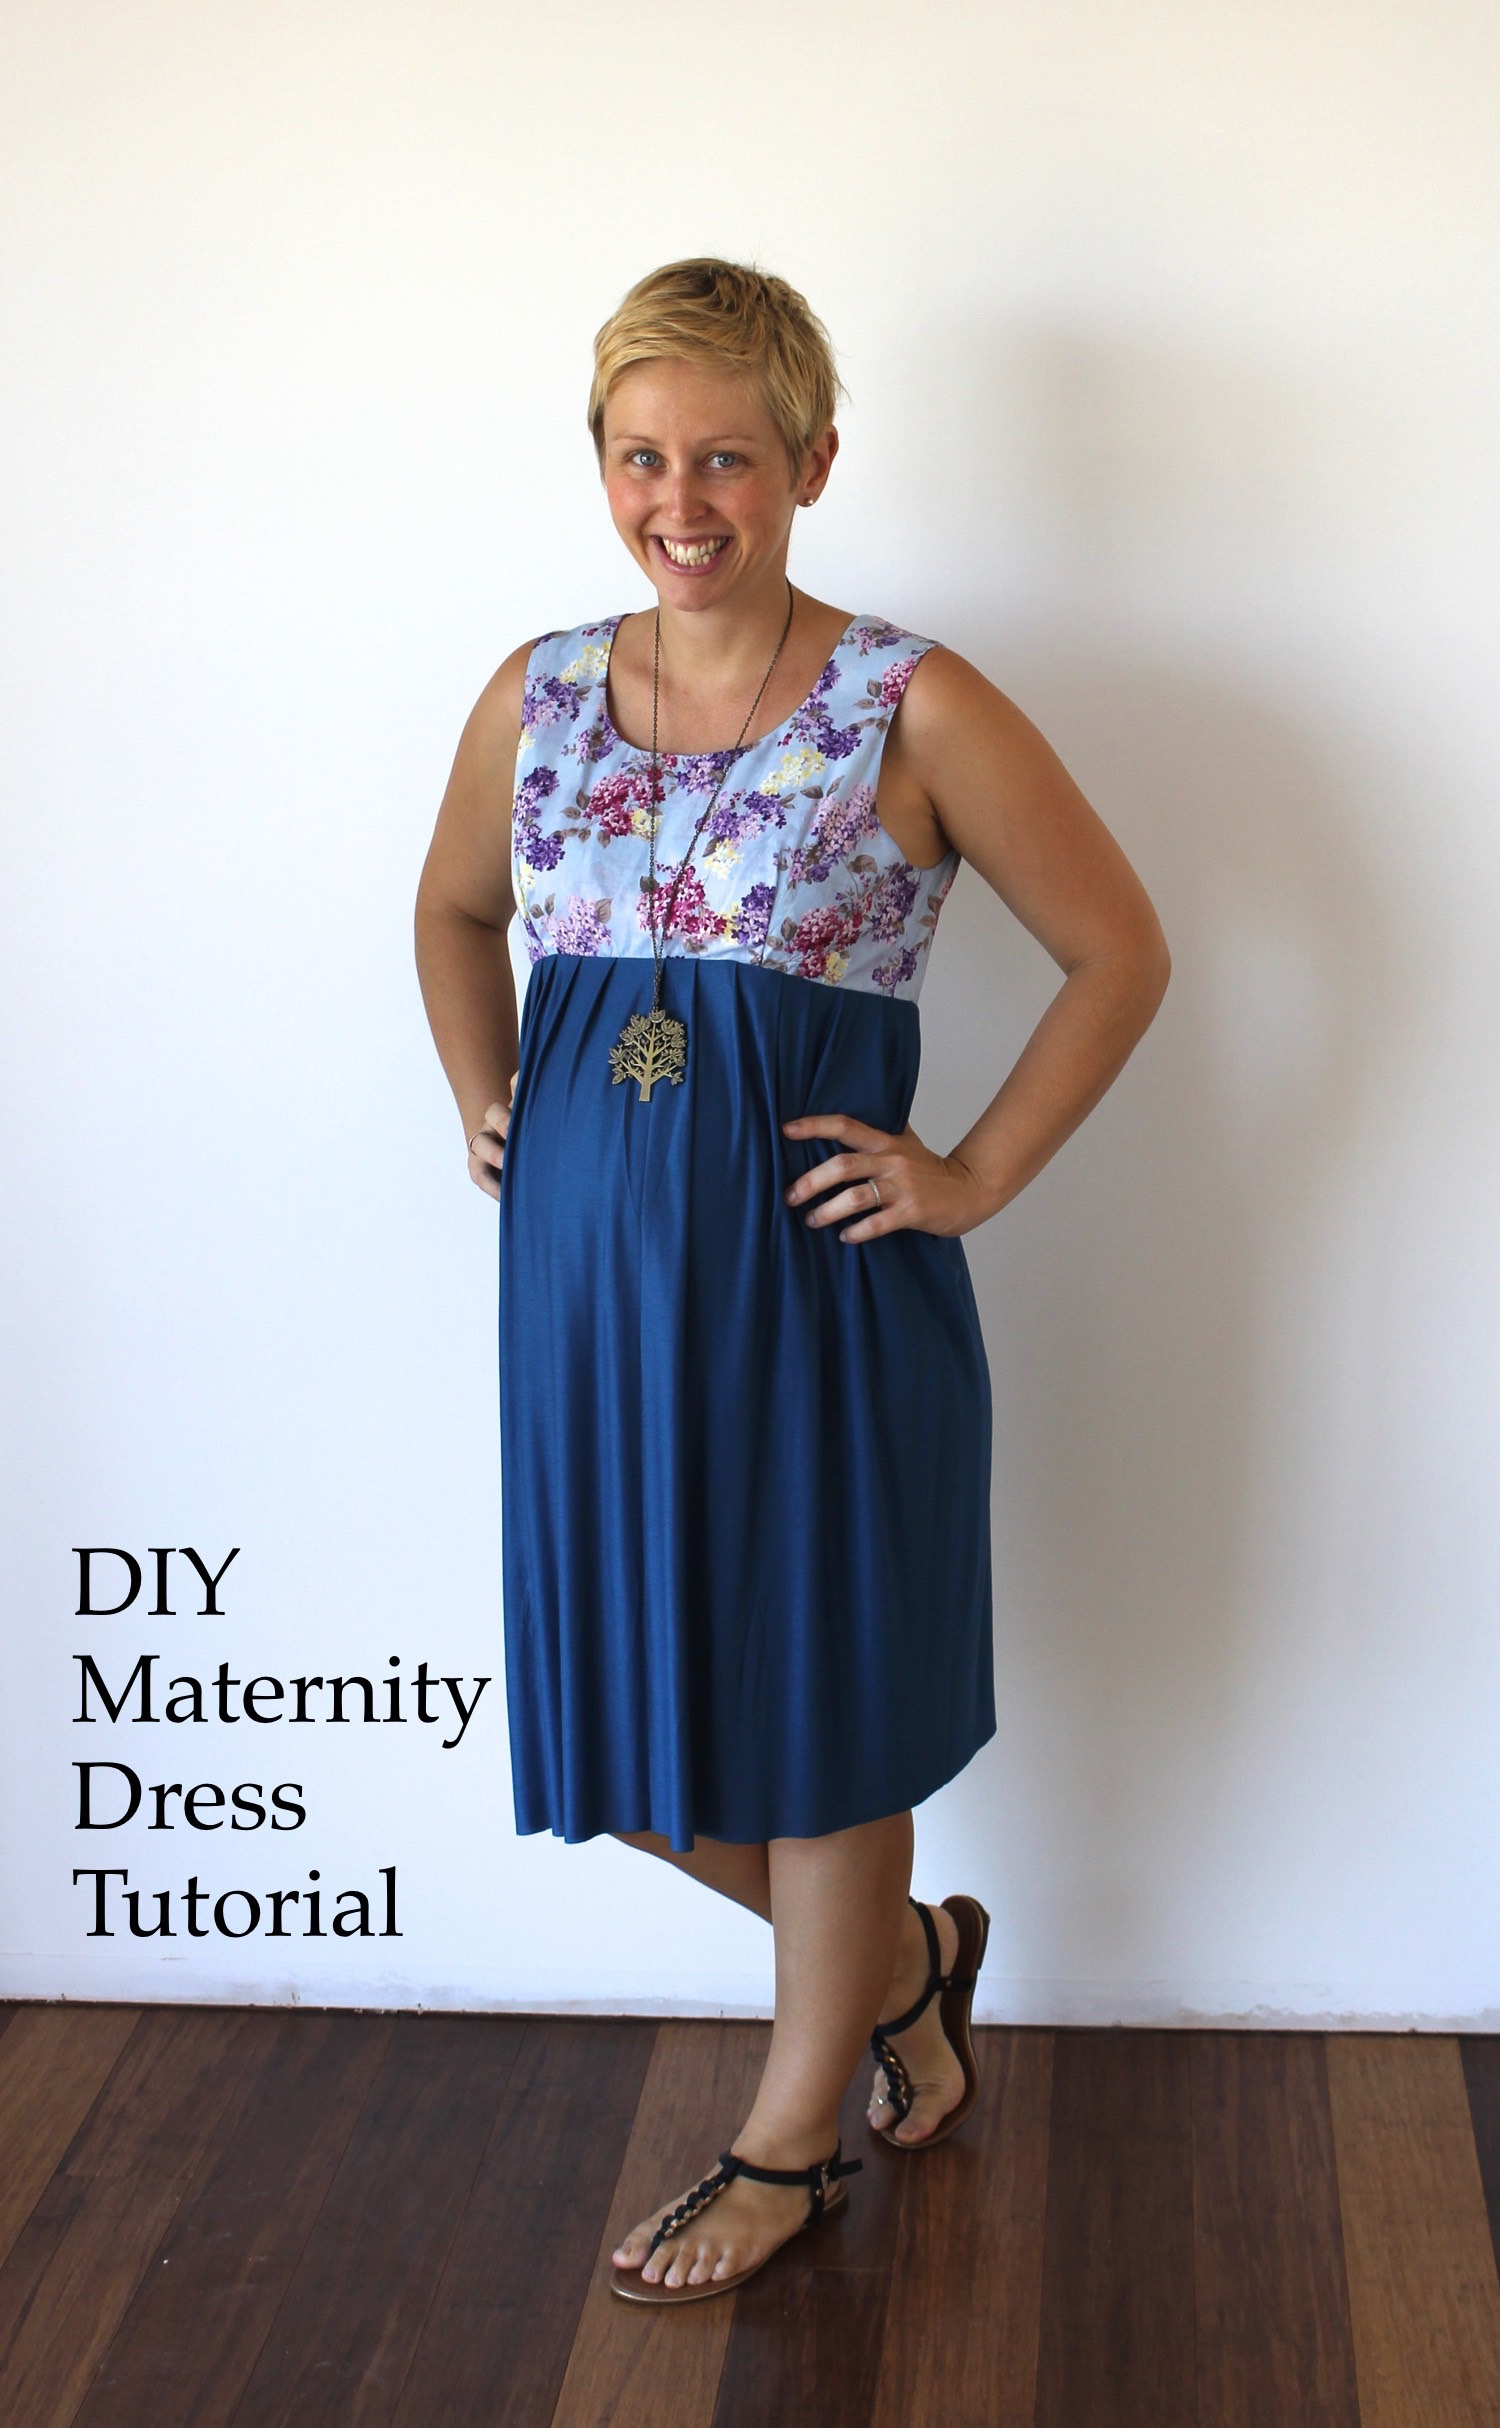 Maternity dress tutorial and free pattern